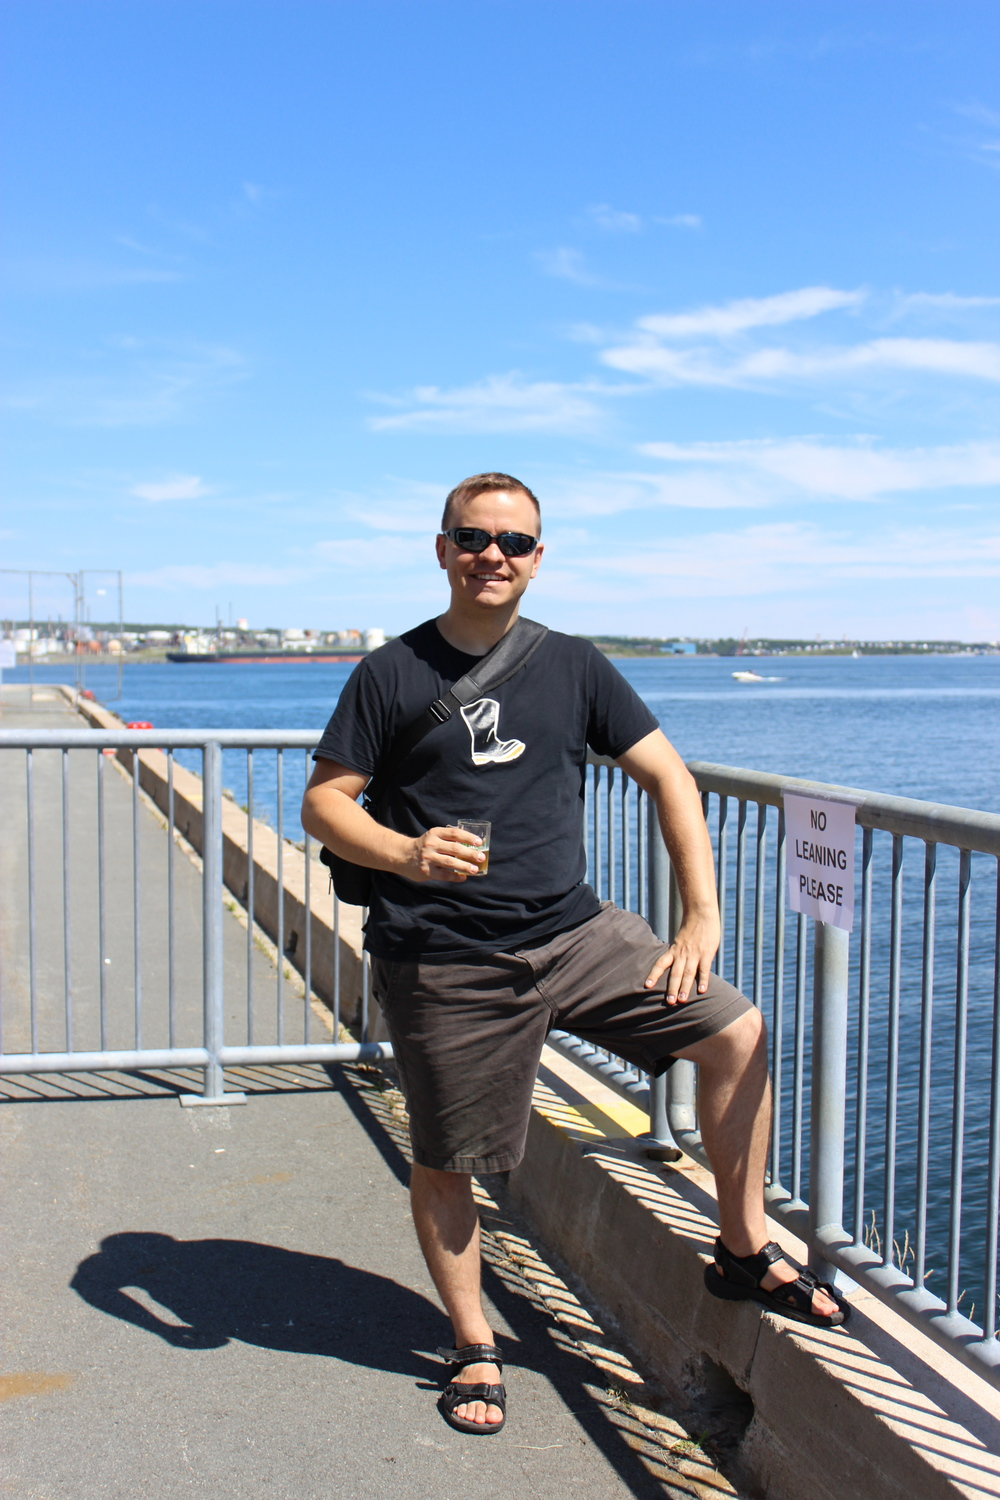 This was me by the waterfront, representing Ontario Craft Brewers with my Wellington shirt.